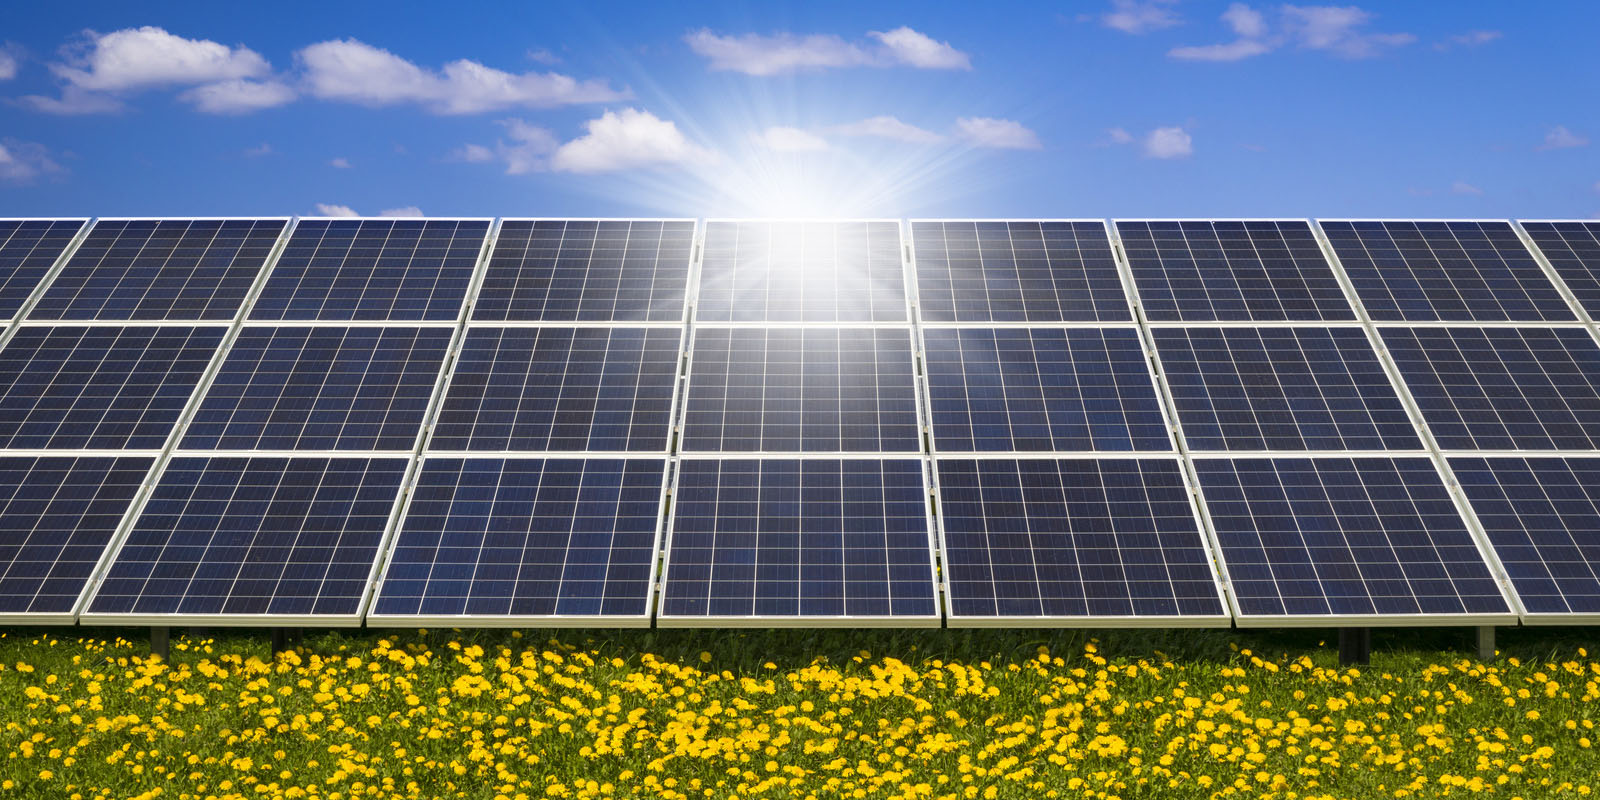 ACTION ALERT: MORATORIUM ON INDUSTRIAL SOLAR ON AG LAND NEEDED